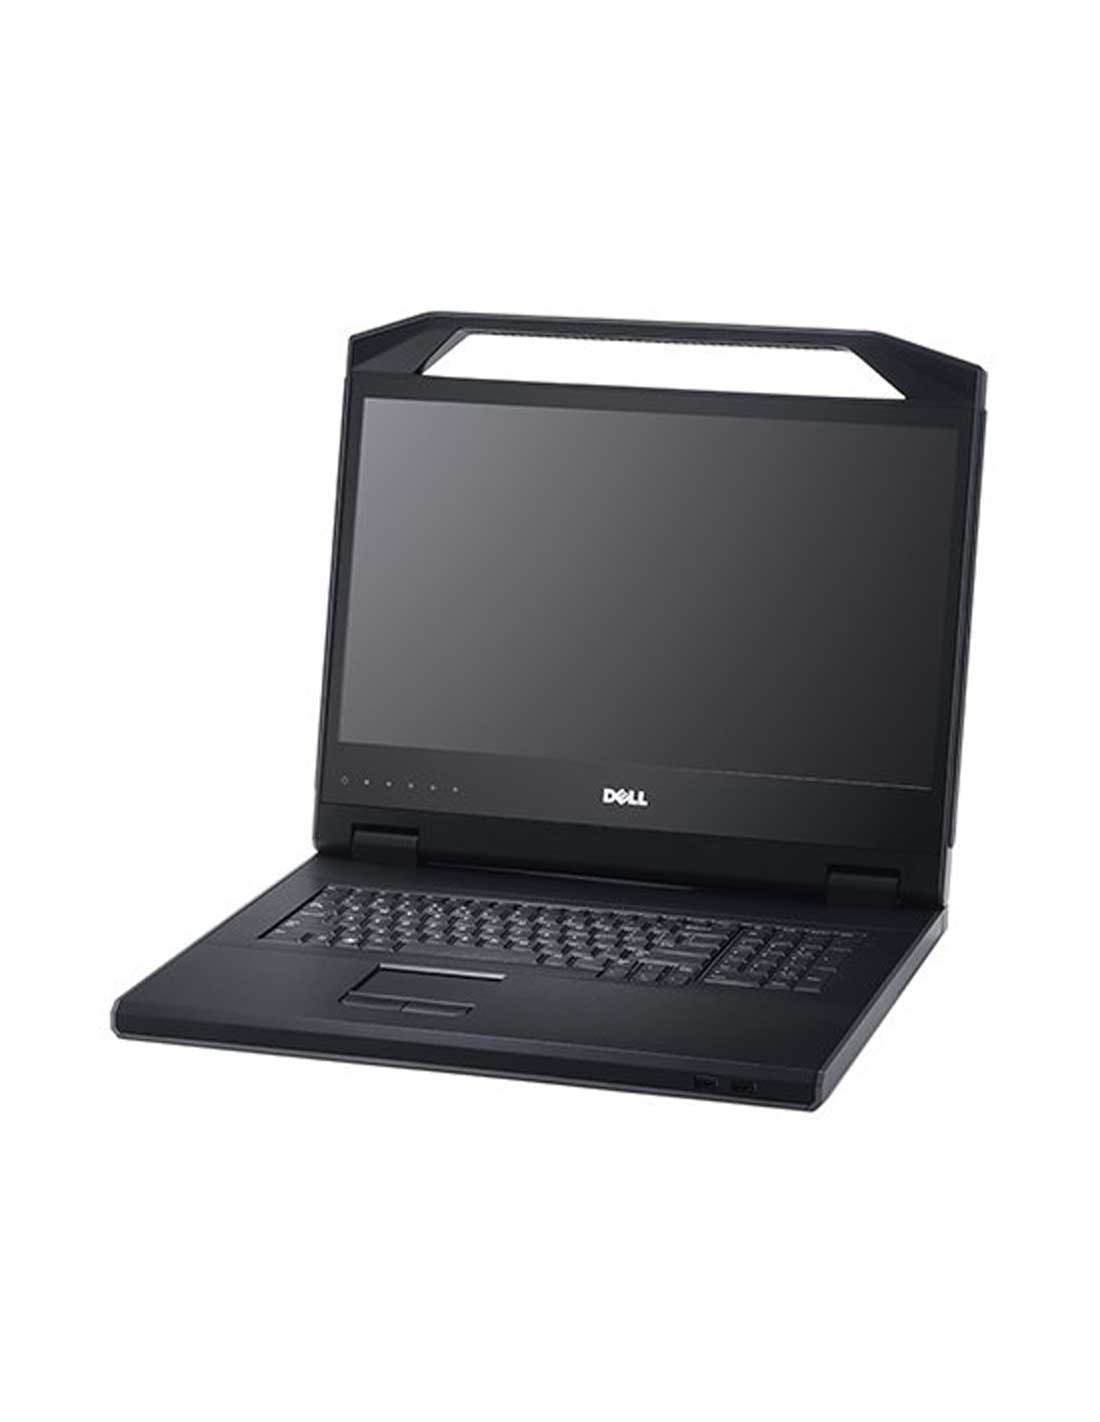 Dell 18.5in LED KMM DKMMLED185-001 at a cheap price and fast free delivery in Dubai